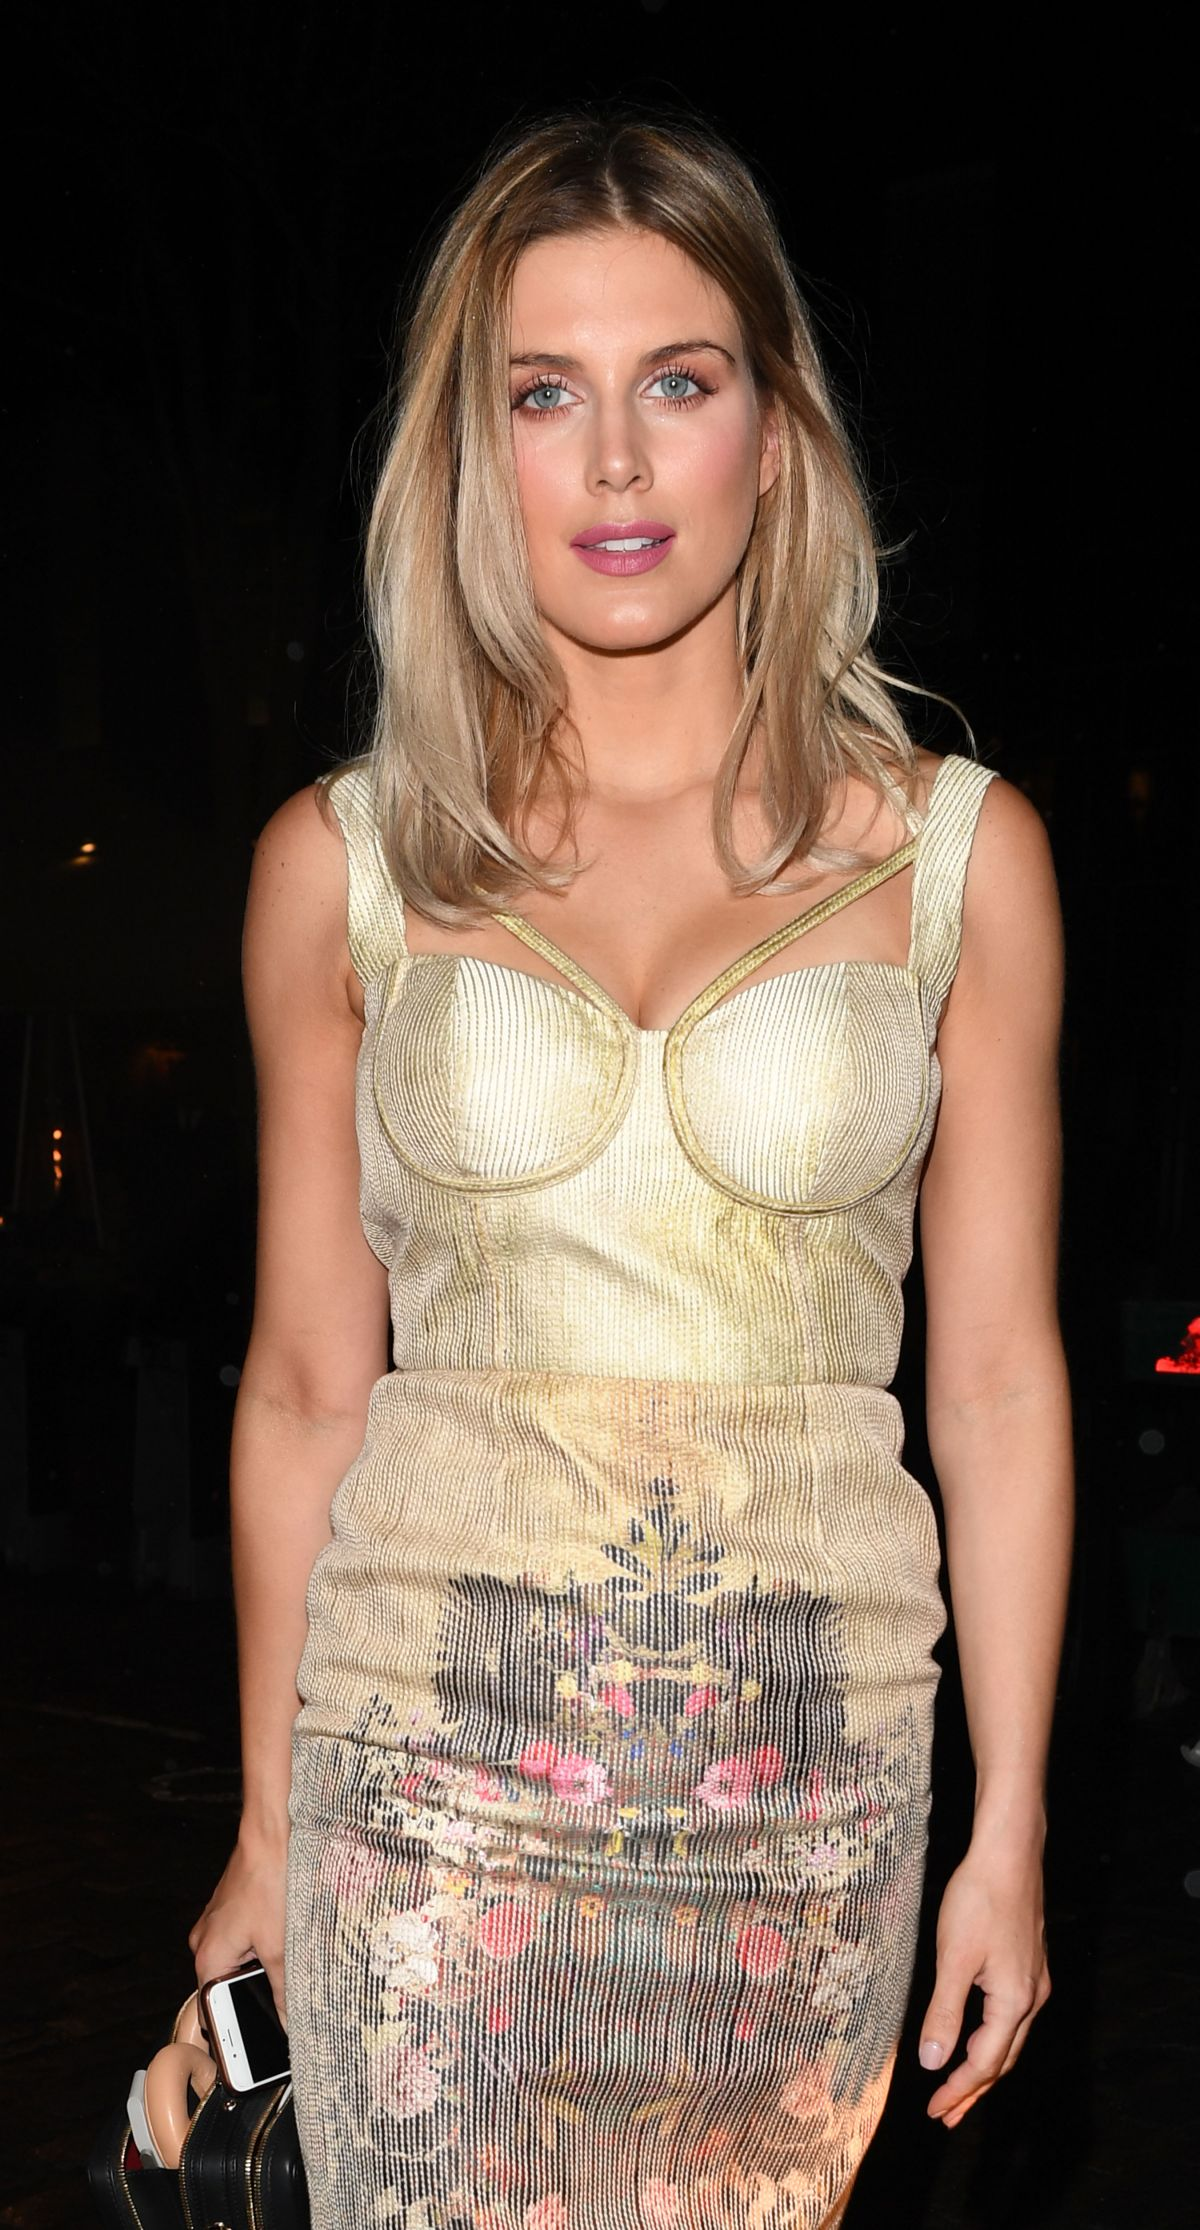 ashley-james-at-instyle-ee-rising-star-party-in-london-02-01-2017_3.jpg